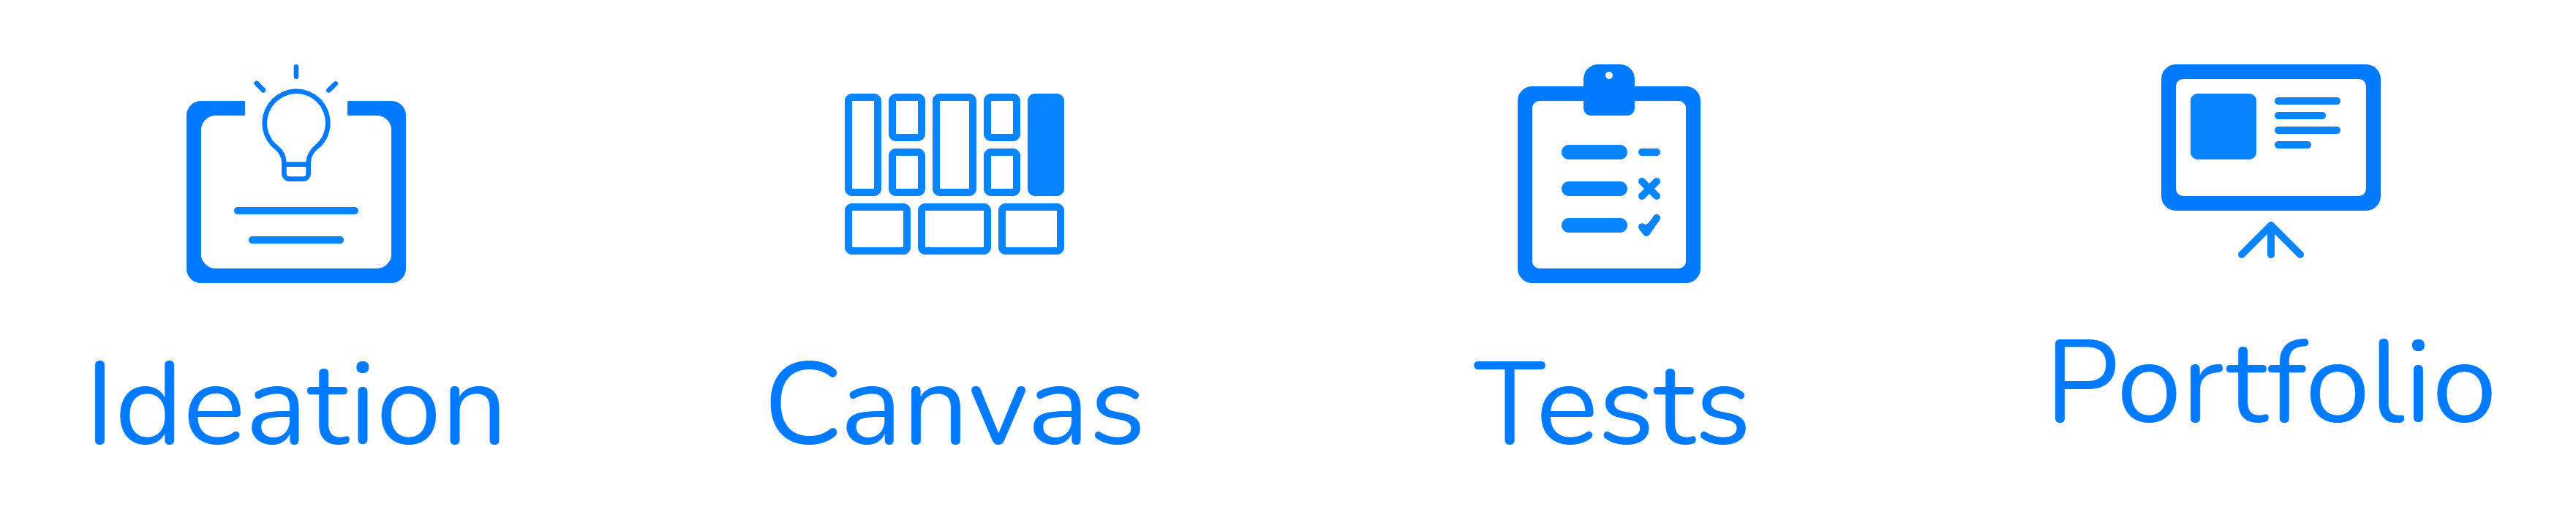 Icons in SimVenture Validate that correspond to the various sections - Ideation, Business Model Canvas, Testing and Portfolio.